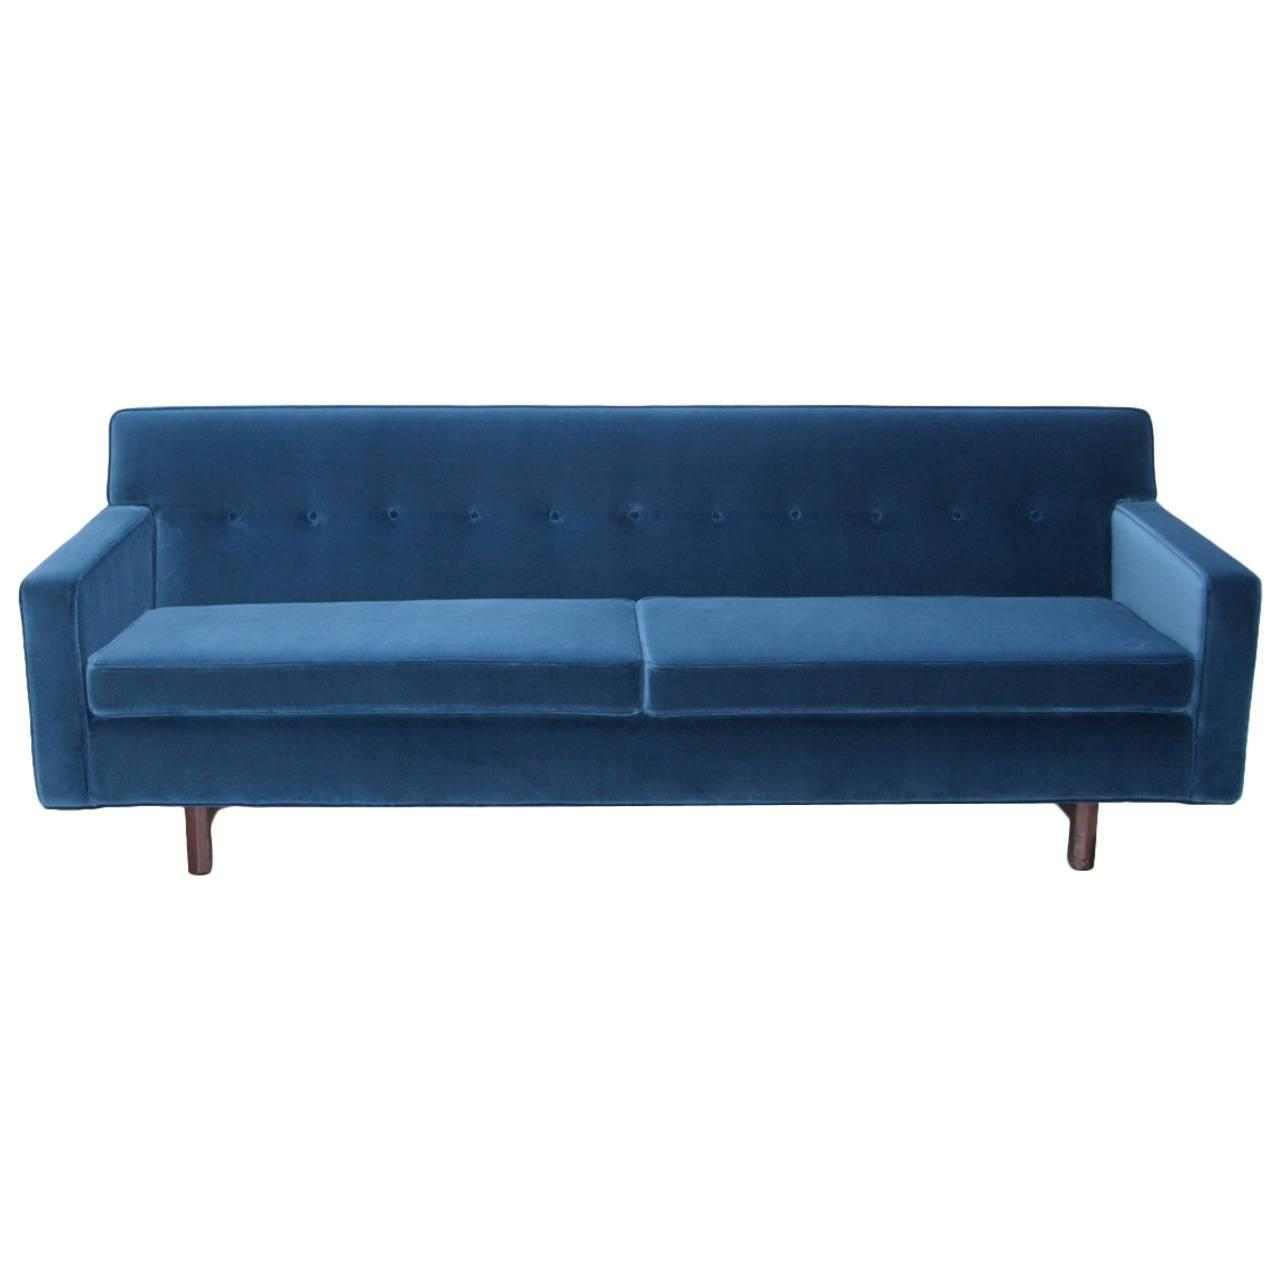 New upholstered edward wormley sofa in indigo dedar fabric for American sofa berlin